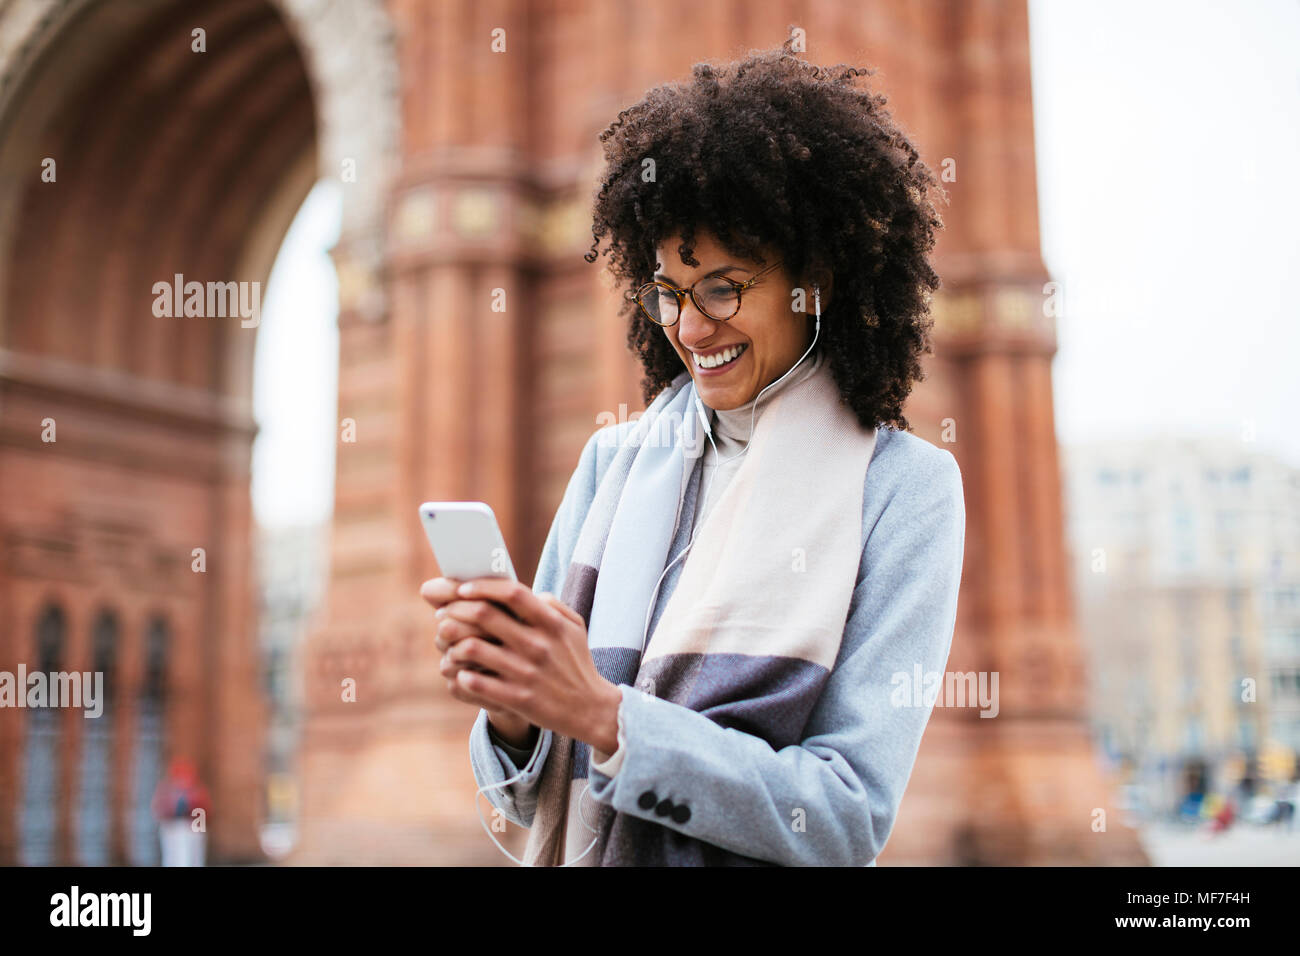 Spain, Barcelona, happy woman with cell phone and earphones at a gate - Stock Image